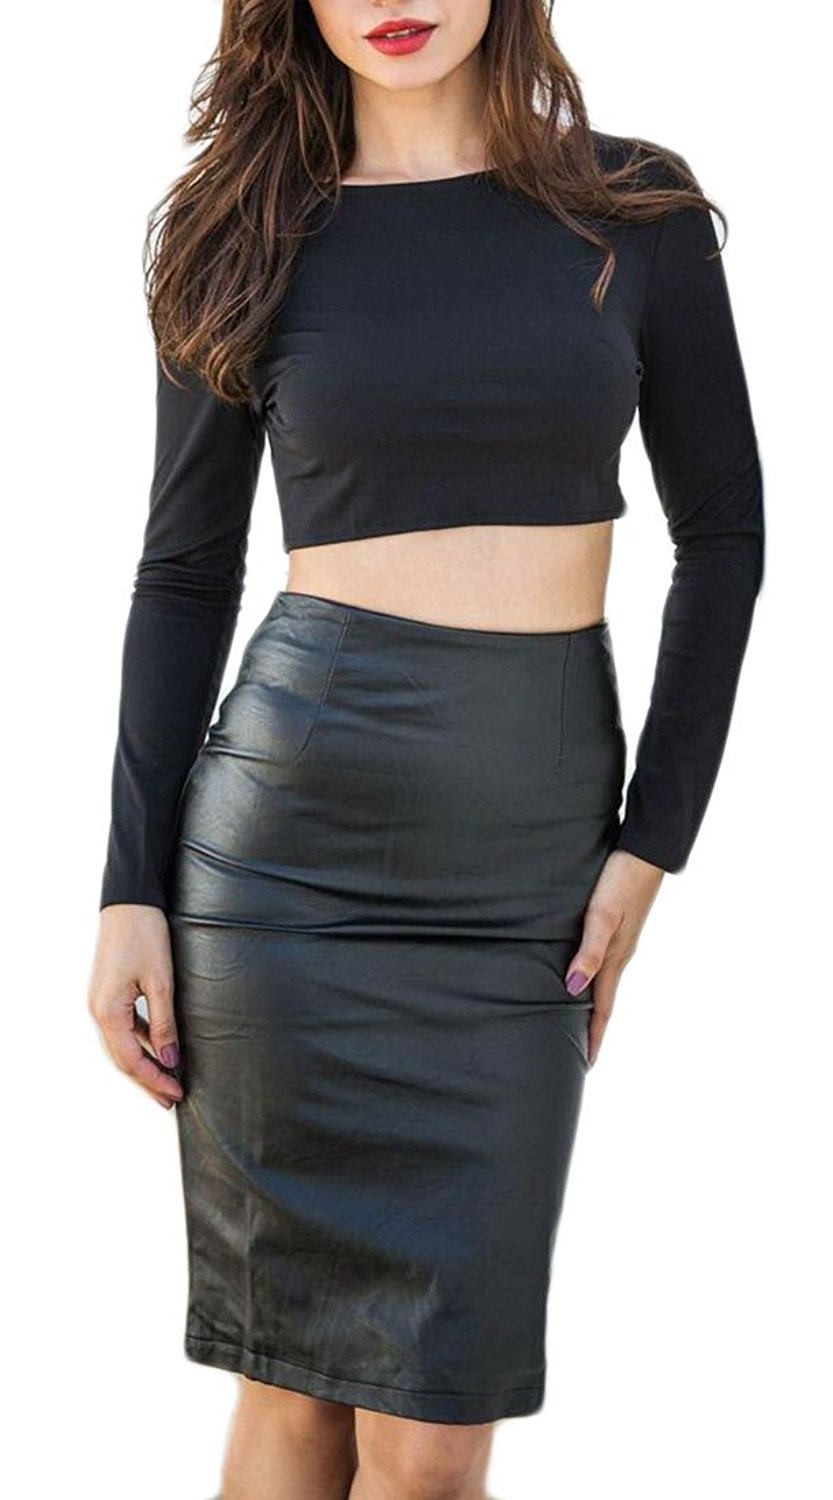 M&S&W Women Sexy Long Sleeve Backless Crop Top & PU Skirts Outfits Party Dresses